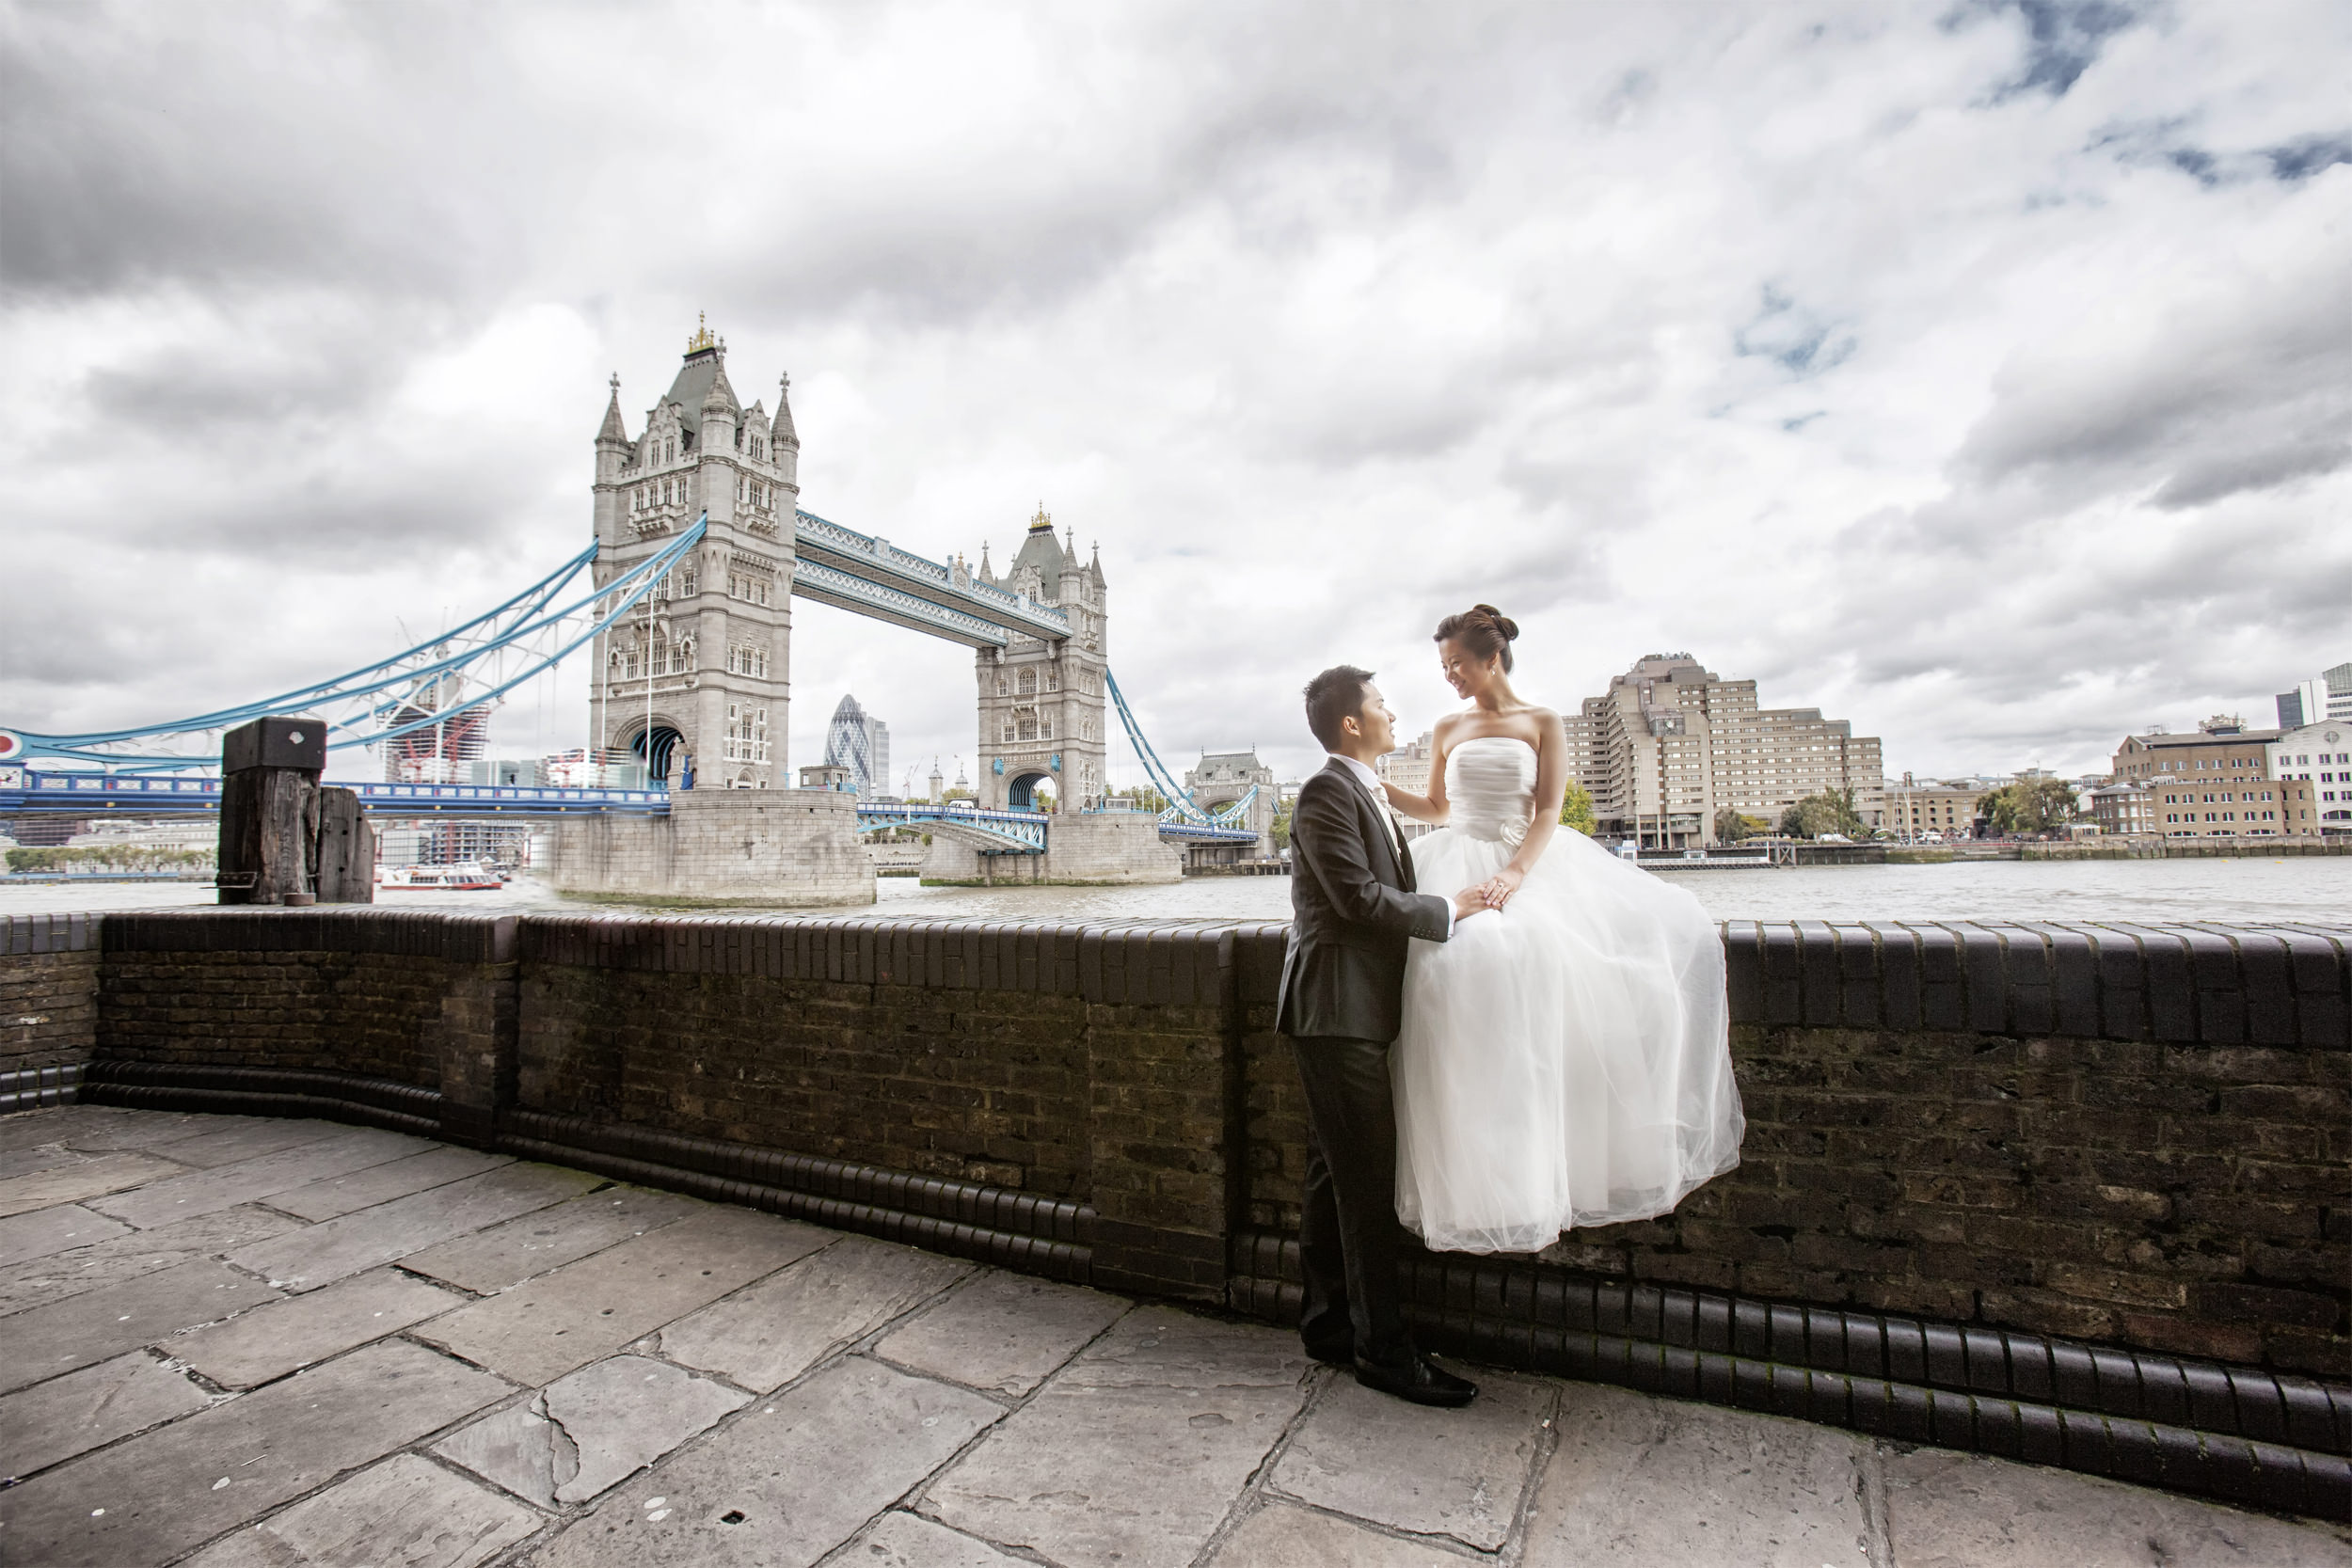 Evening Standard wedding photography article